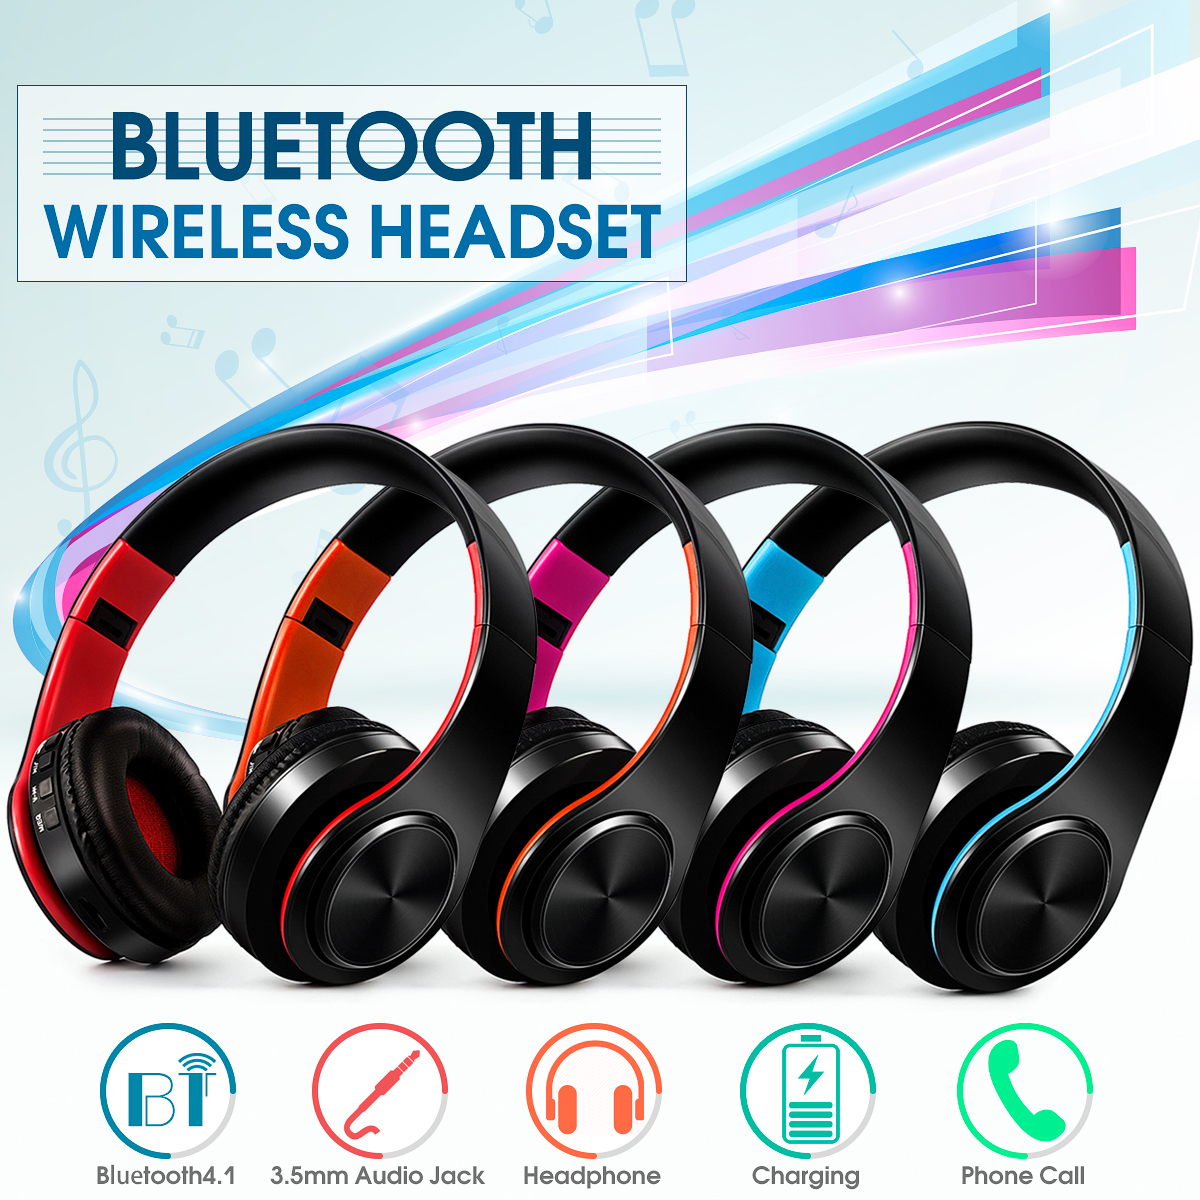 Foldable Noise Cancelling Wireless/Wired Hifi Stereo Bass Bluetooth 4.0 Sport Game Headphone Headset Over Ear Mic & FM Radio TF  AUX for Iphone S amsung Ipad Ipod PC/ Cell Phone/ T